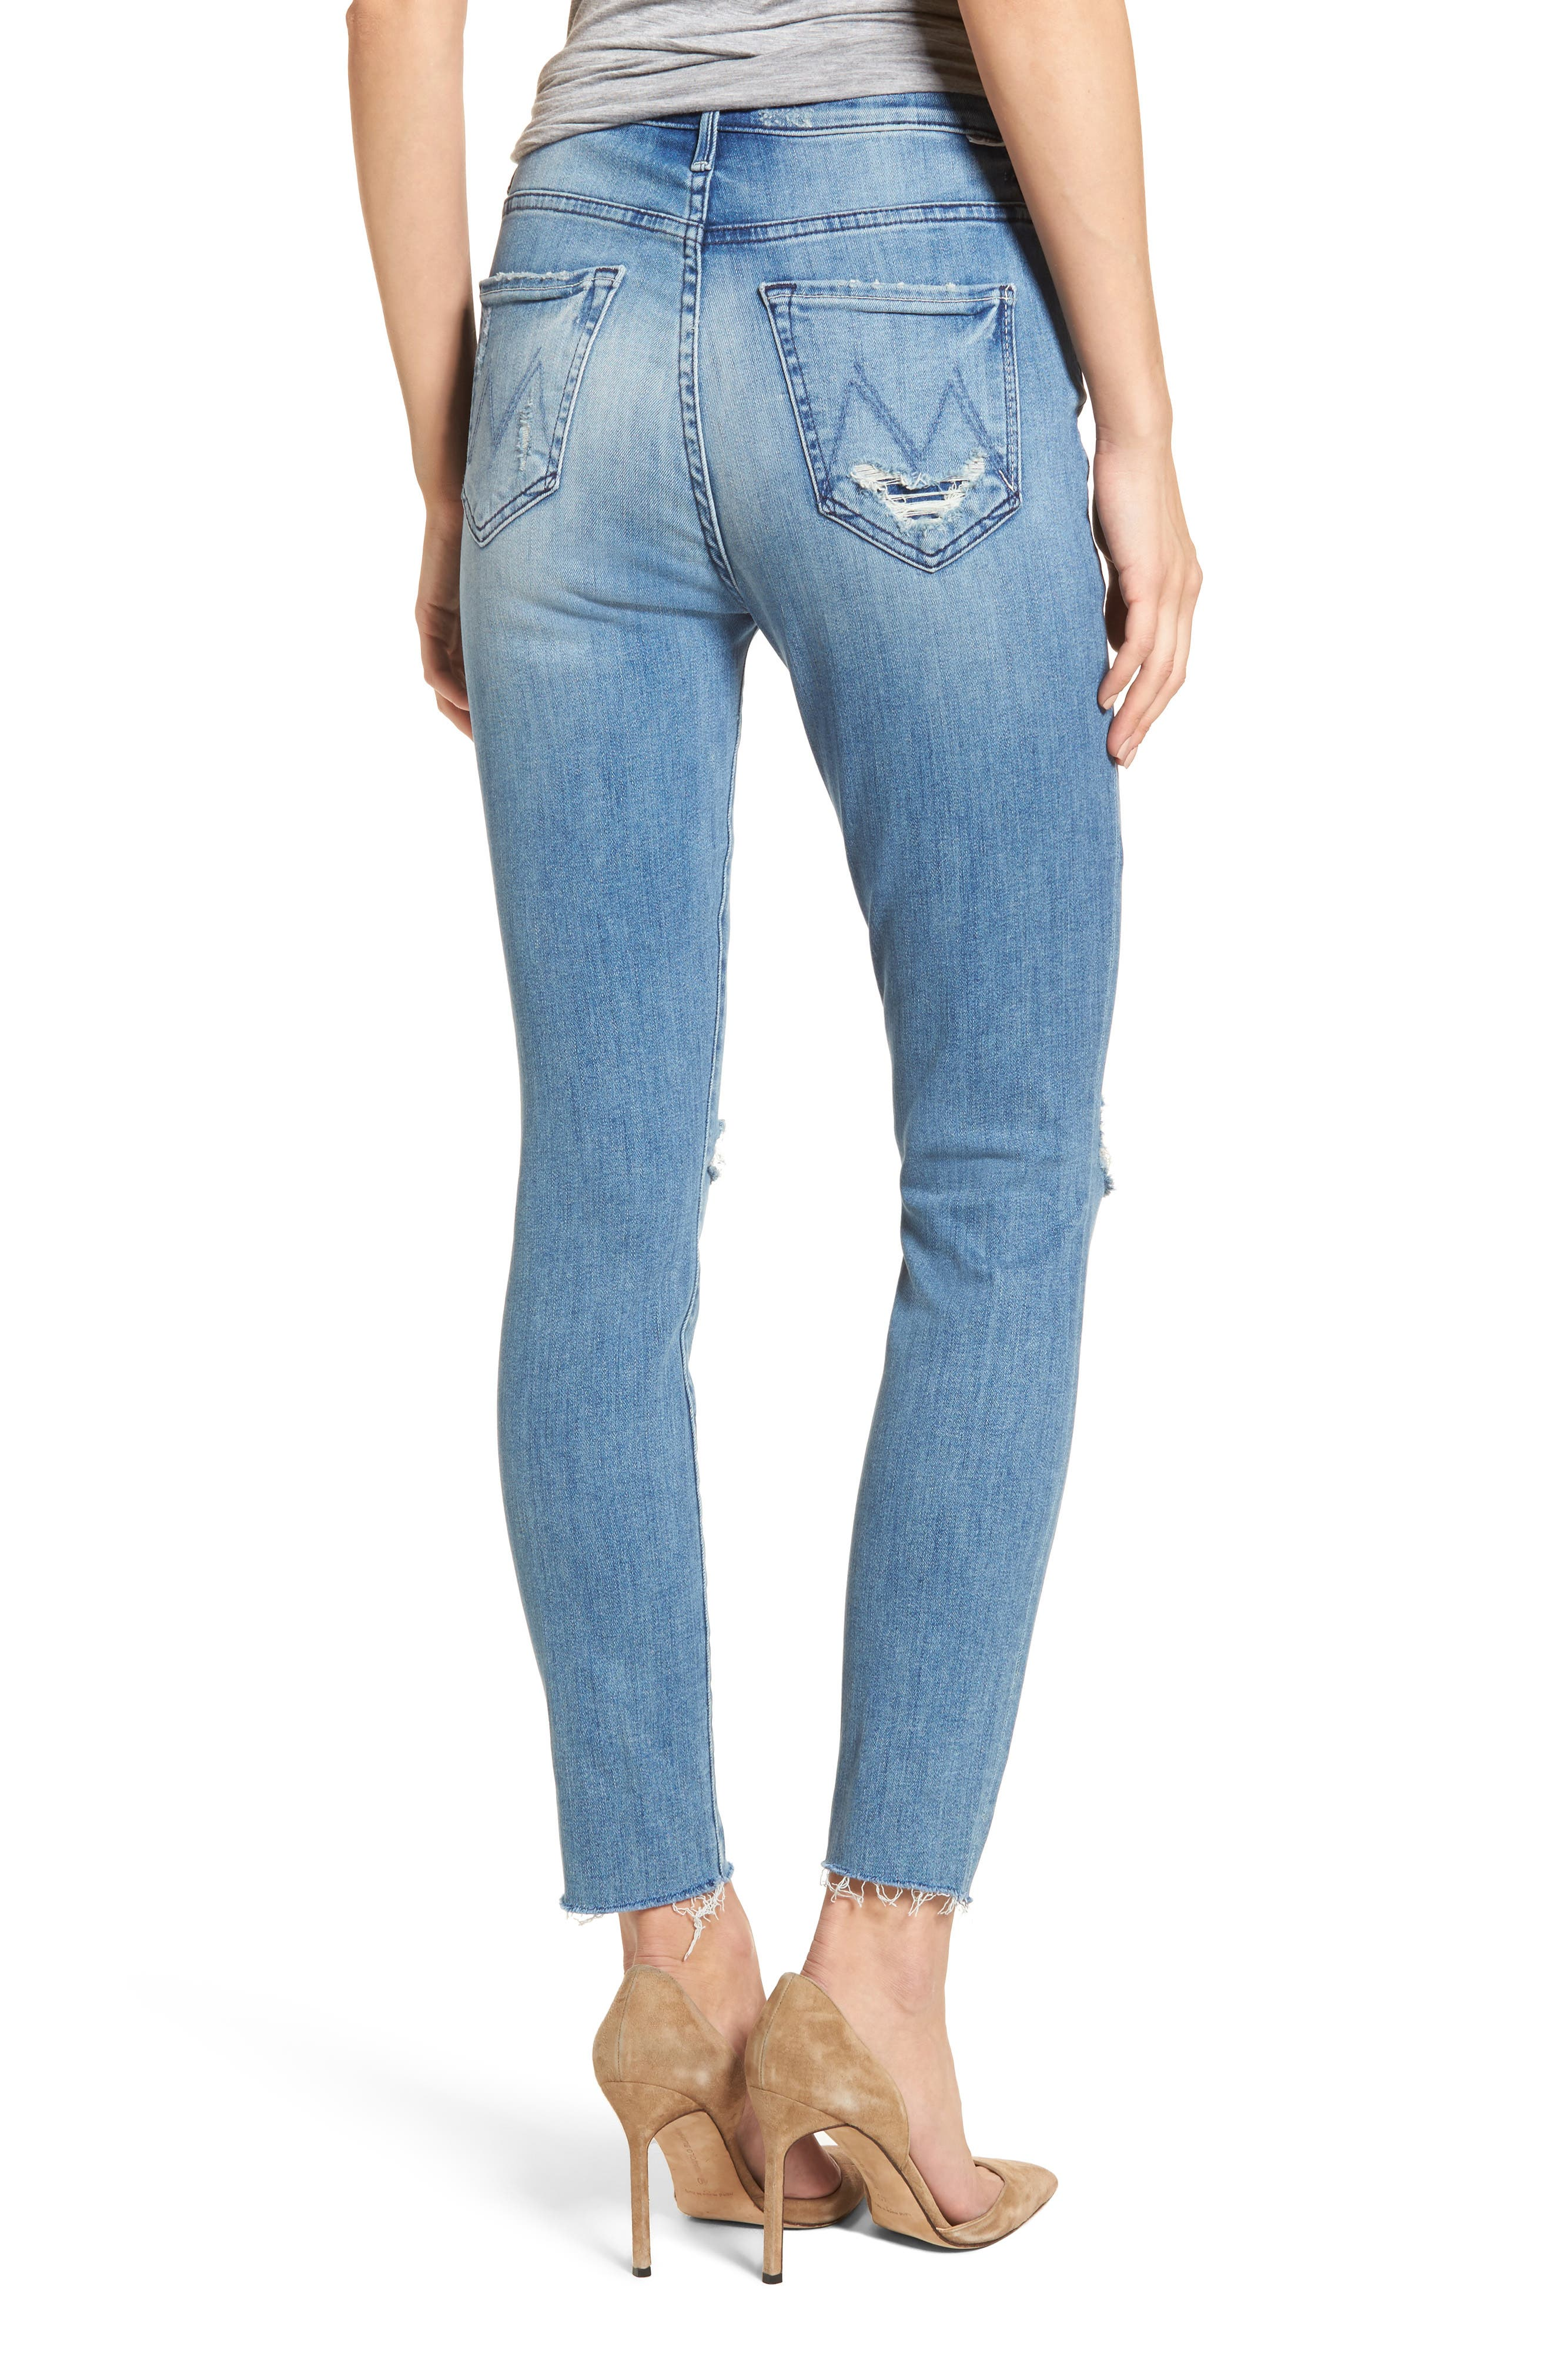 The Swooner High Waist Ankle Skinny Jeans,                             Alternate thumbnail 2, color,                             412